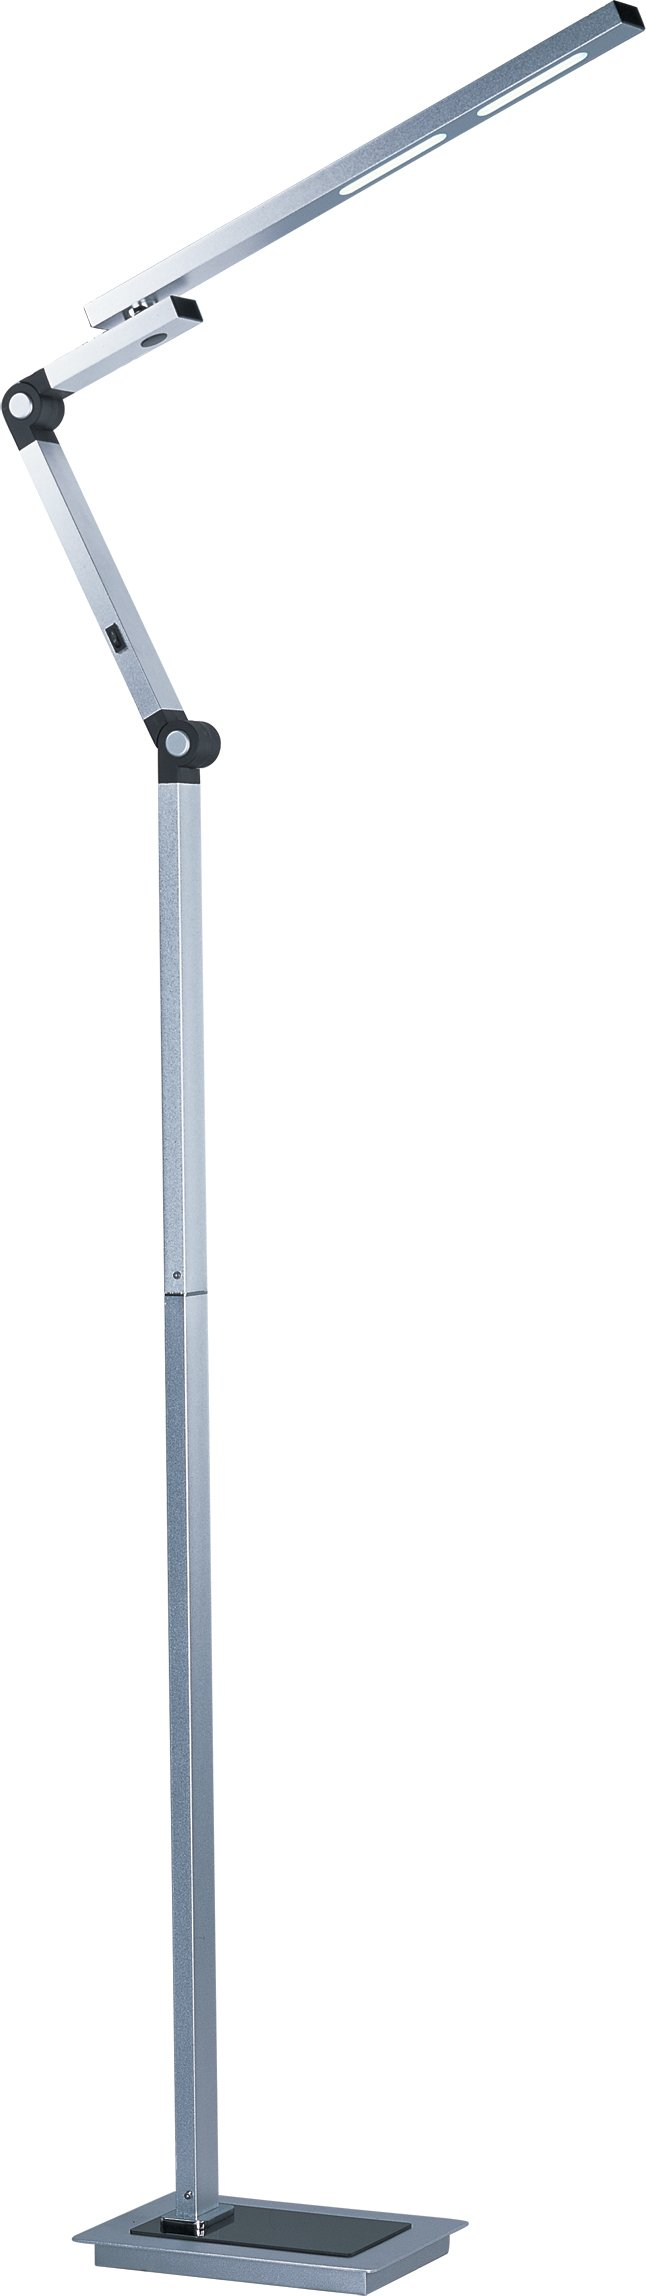 ET2 E41031-SA Eco-Task LED Floor Lamp, Satin Aluminum Finish, Glass, LED Bulb, 13W Max., Dry Safety Rated, 3000K Color Temp., Electronic Low Voltage (ELV) Dimmable, Glass Shade Material, 2304 Rated Lumens by ET2 Lighting (Image #1)